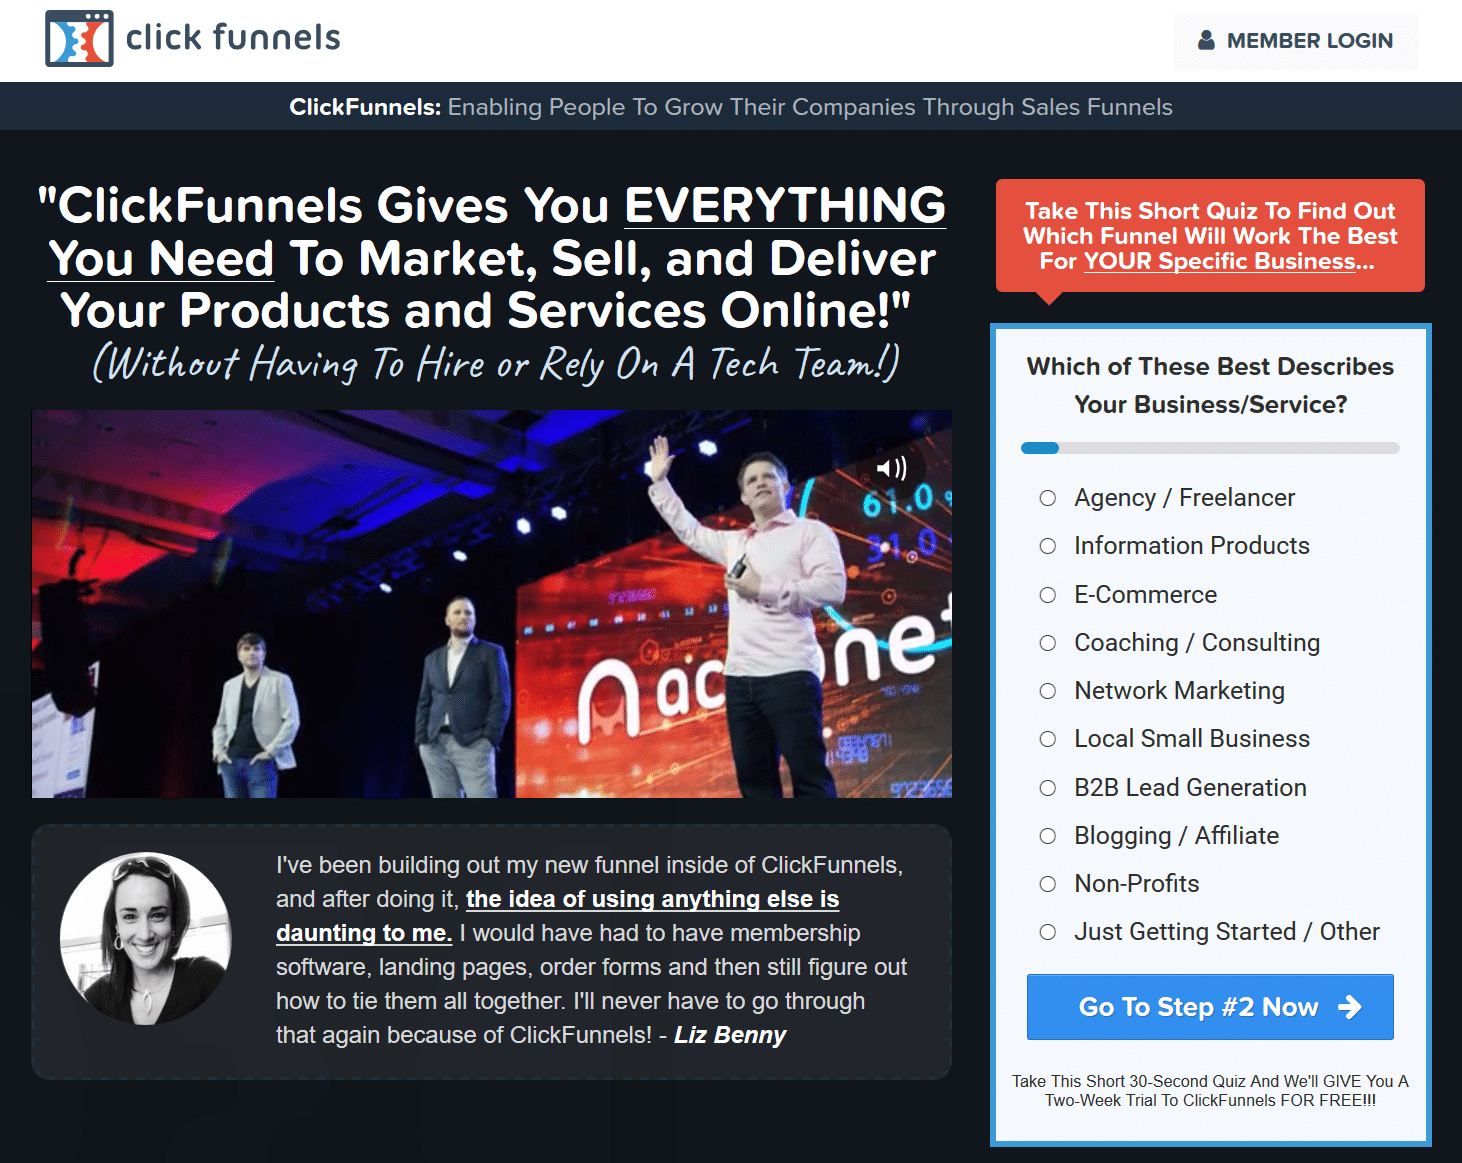 How To Download And Save A Clickfunnels Webinar